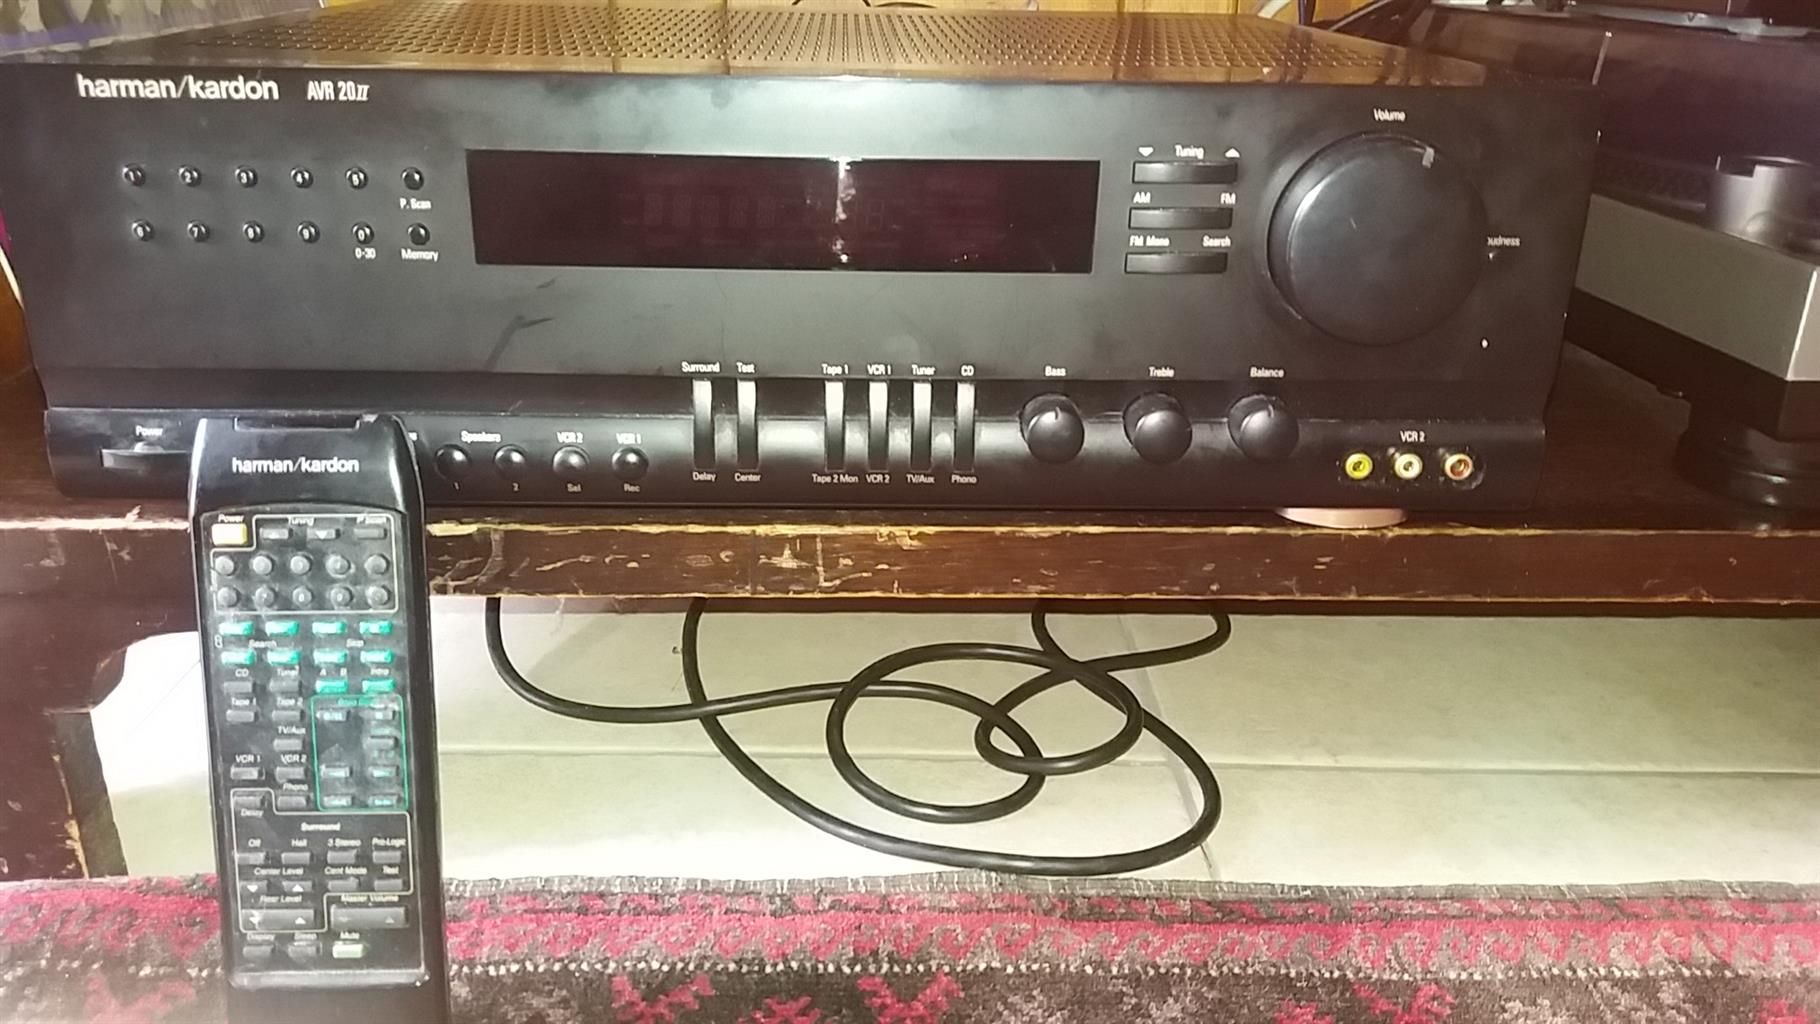 Wanted AMPLIFIER for  Home Sound 5.1 Surround System - 3 Input slots at least